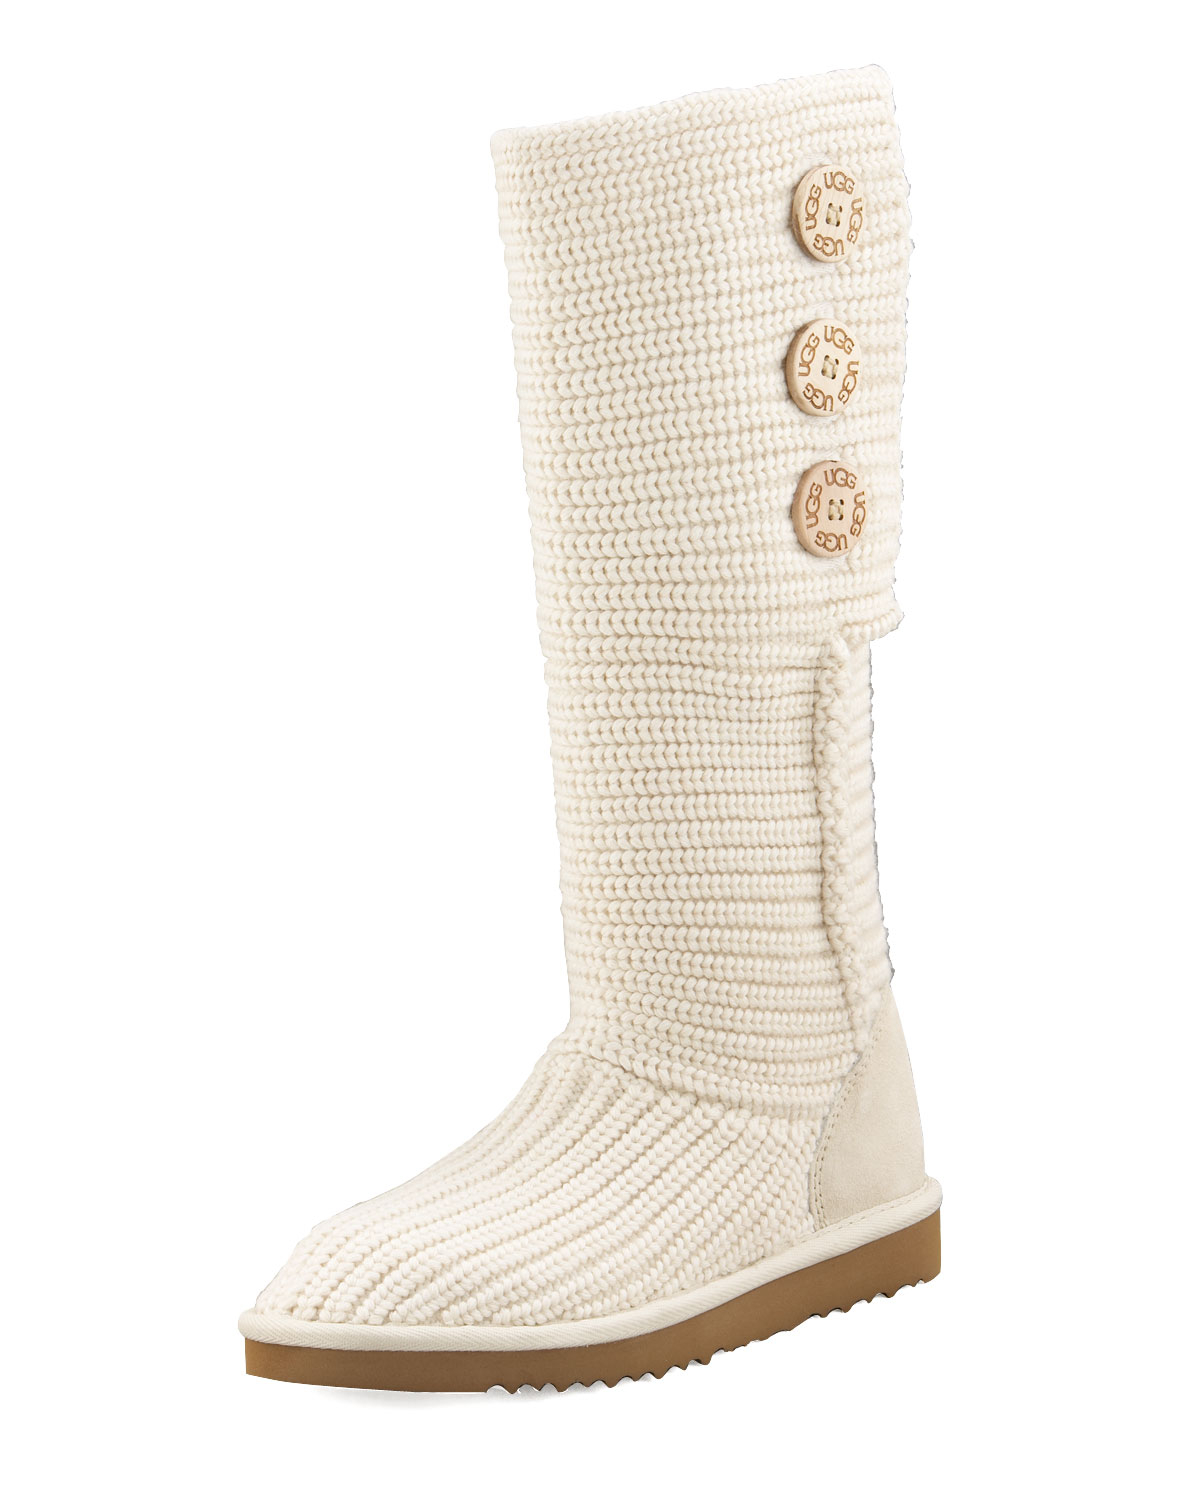 Ugg Classic Cardy Crochet Shearling Boot In Natural Lyst